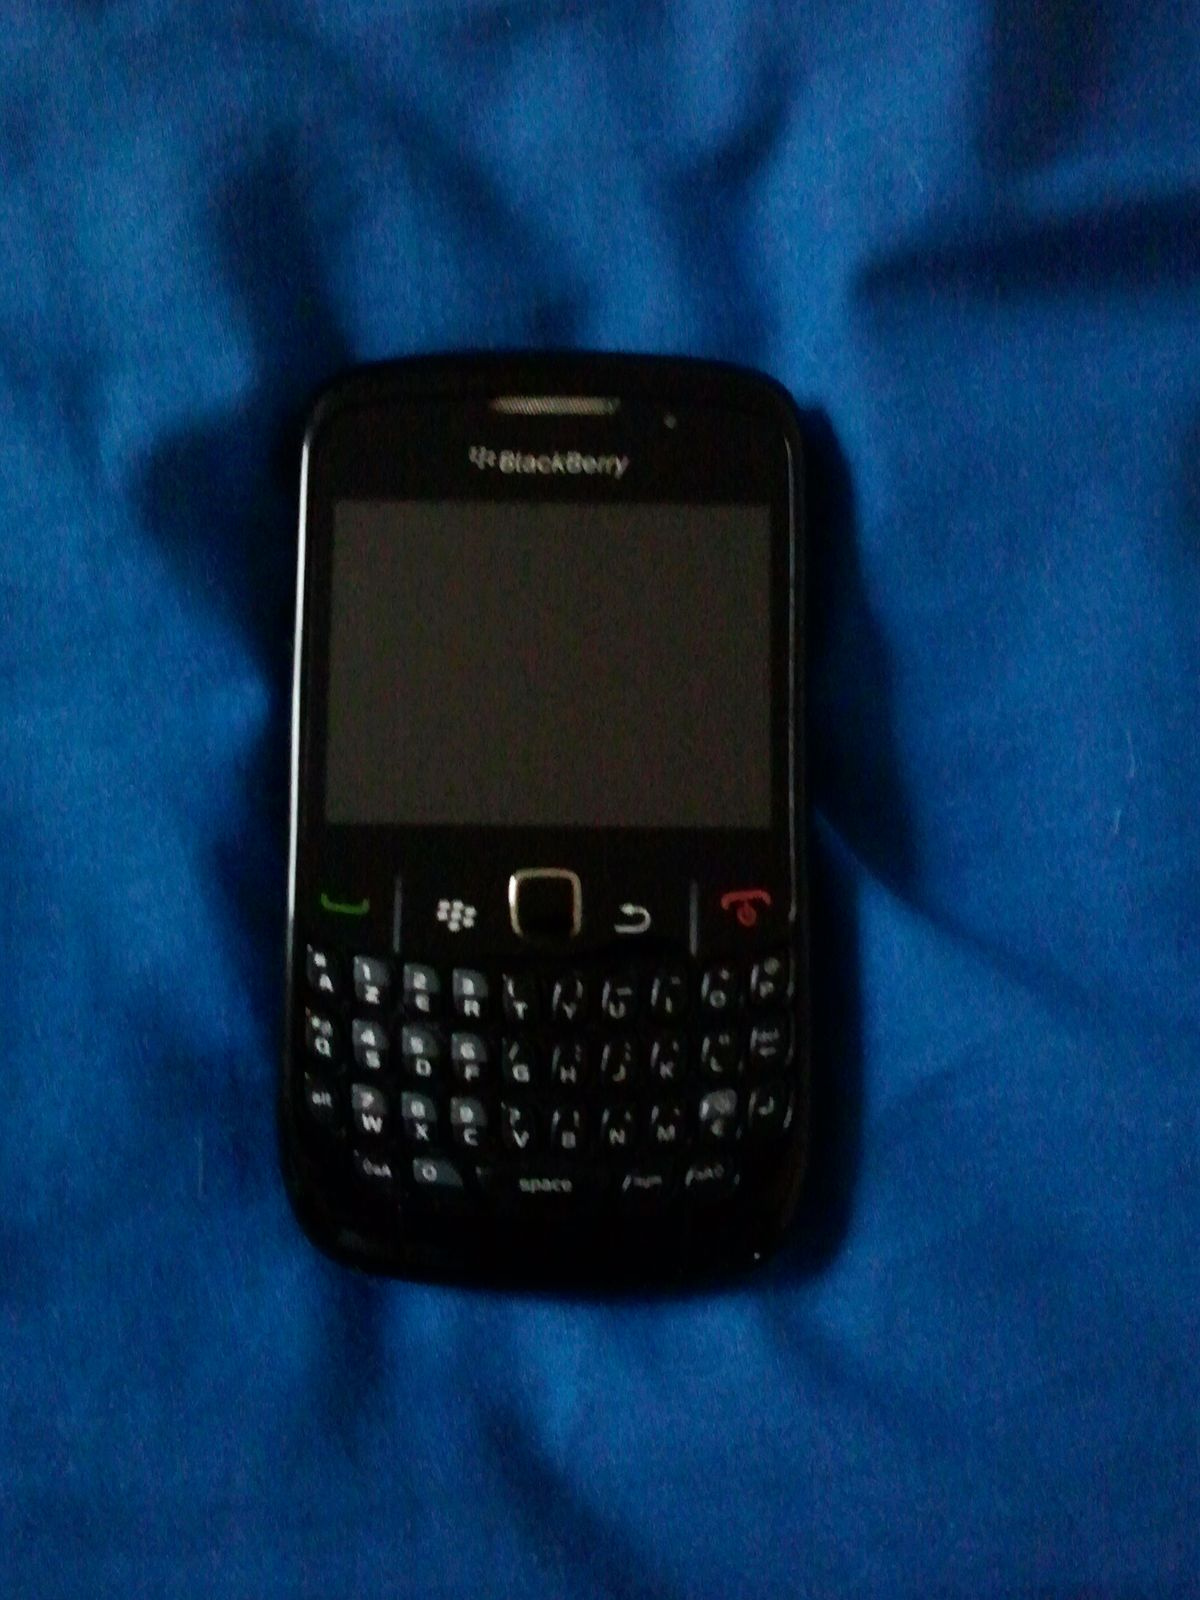 BlackBerry Curve 8520 - Wikipedia